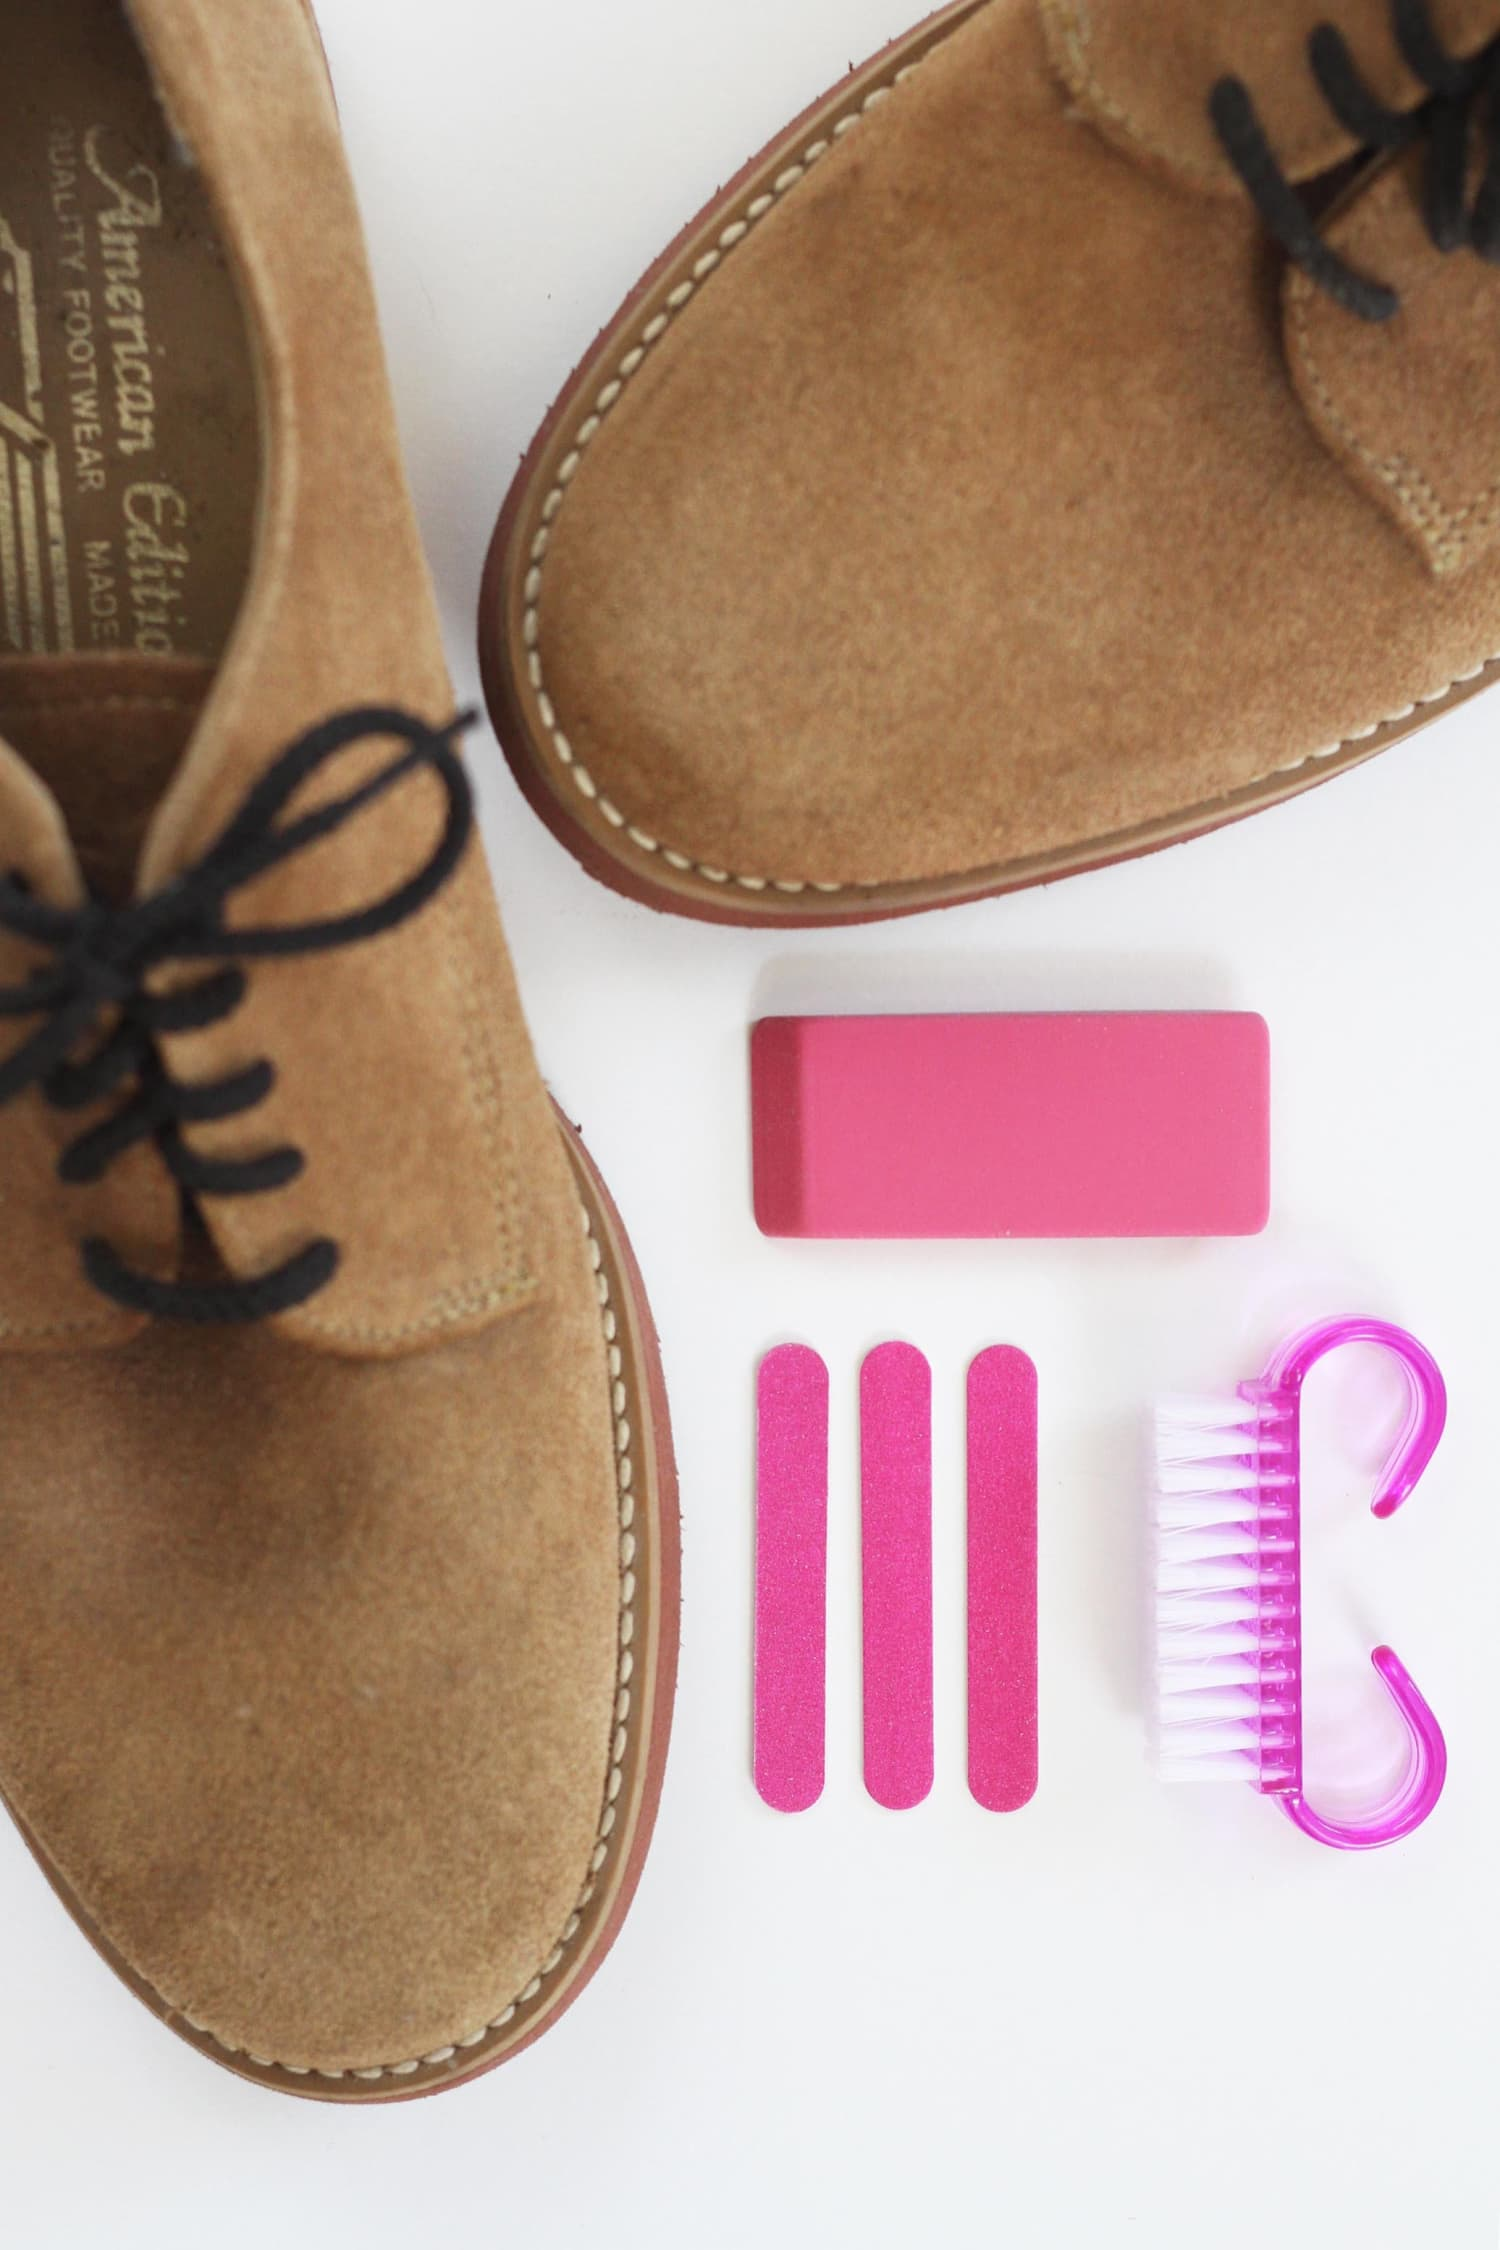 How To Clean Suede Shoes at Home - Best